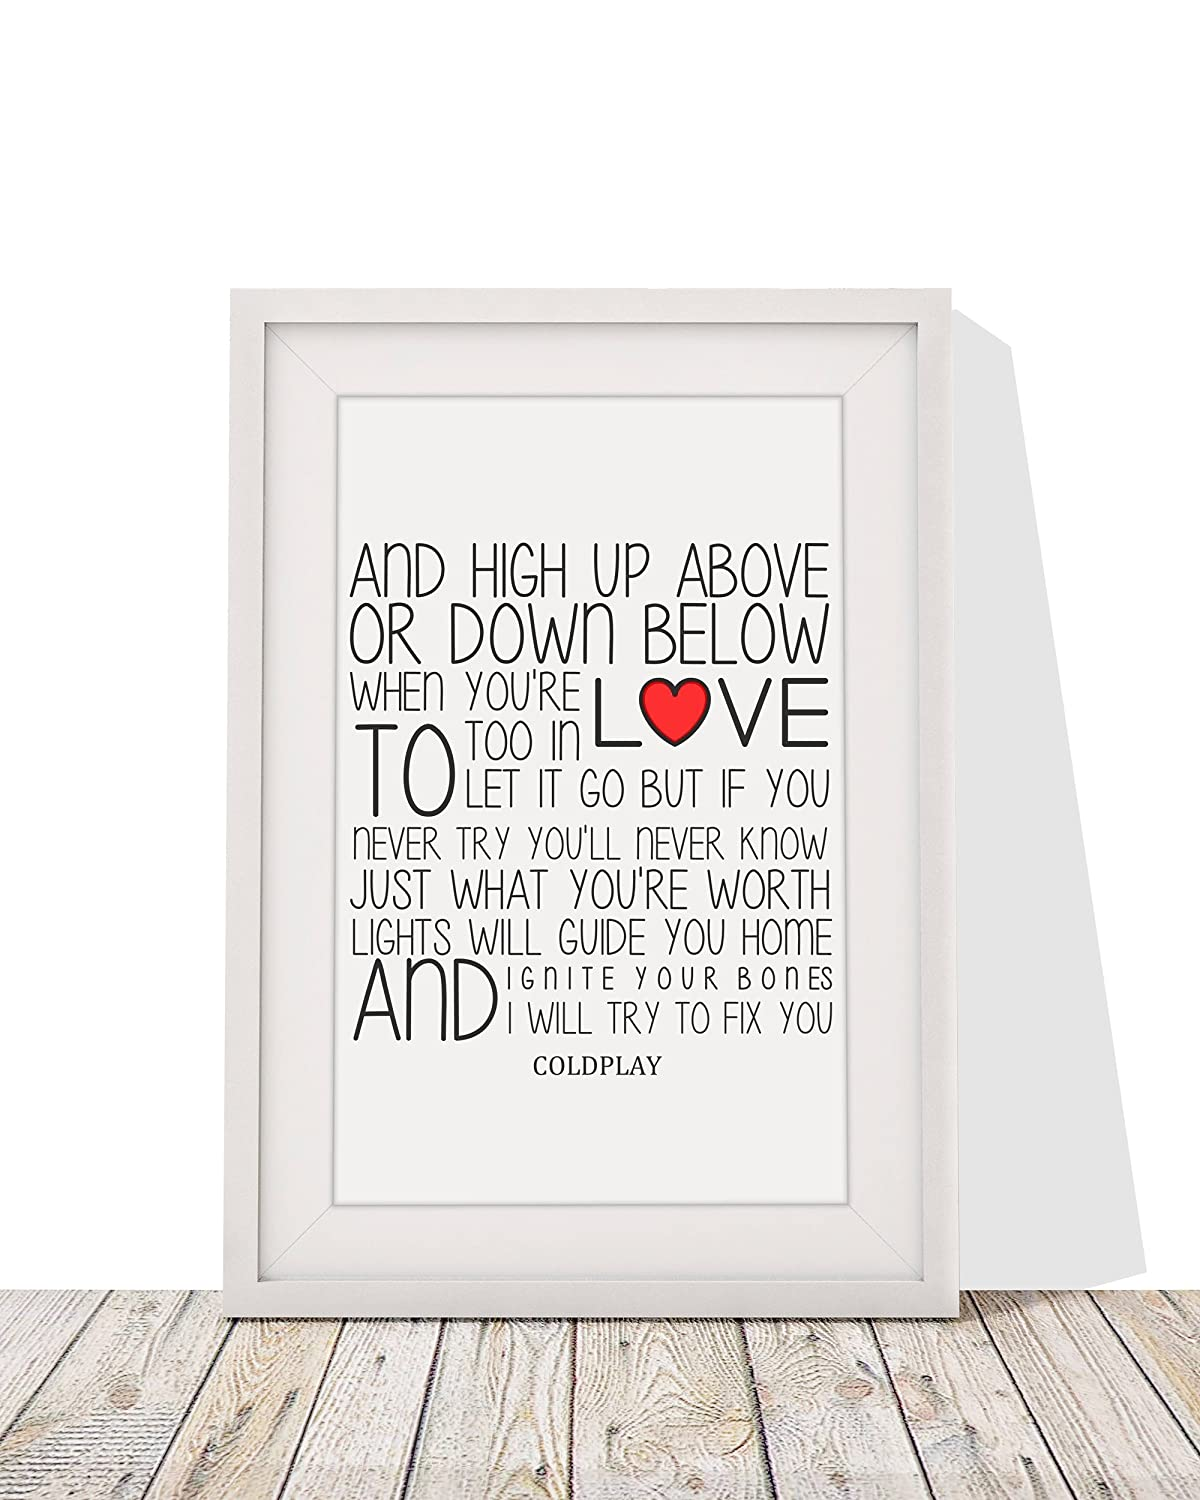 Coldplay fix you song lyrics gift framed print with mount 12 x coldplay fix you song lyrics gift framed print with mount 12 x 10 inch amazon kitchen home jeuxipadfo Gallery